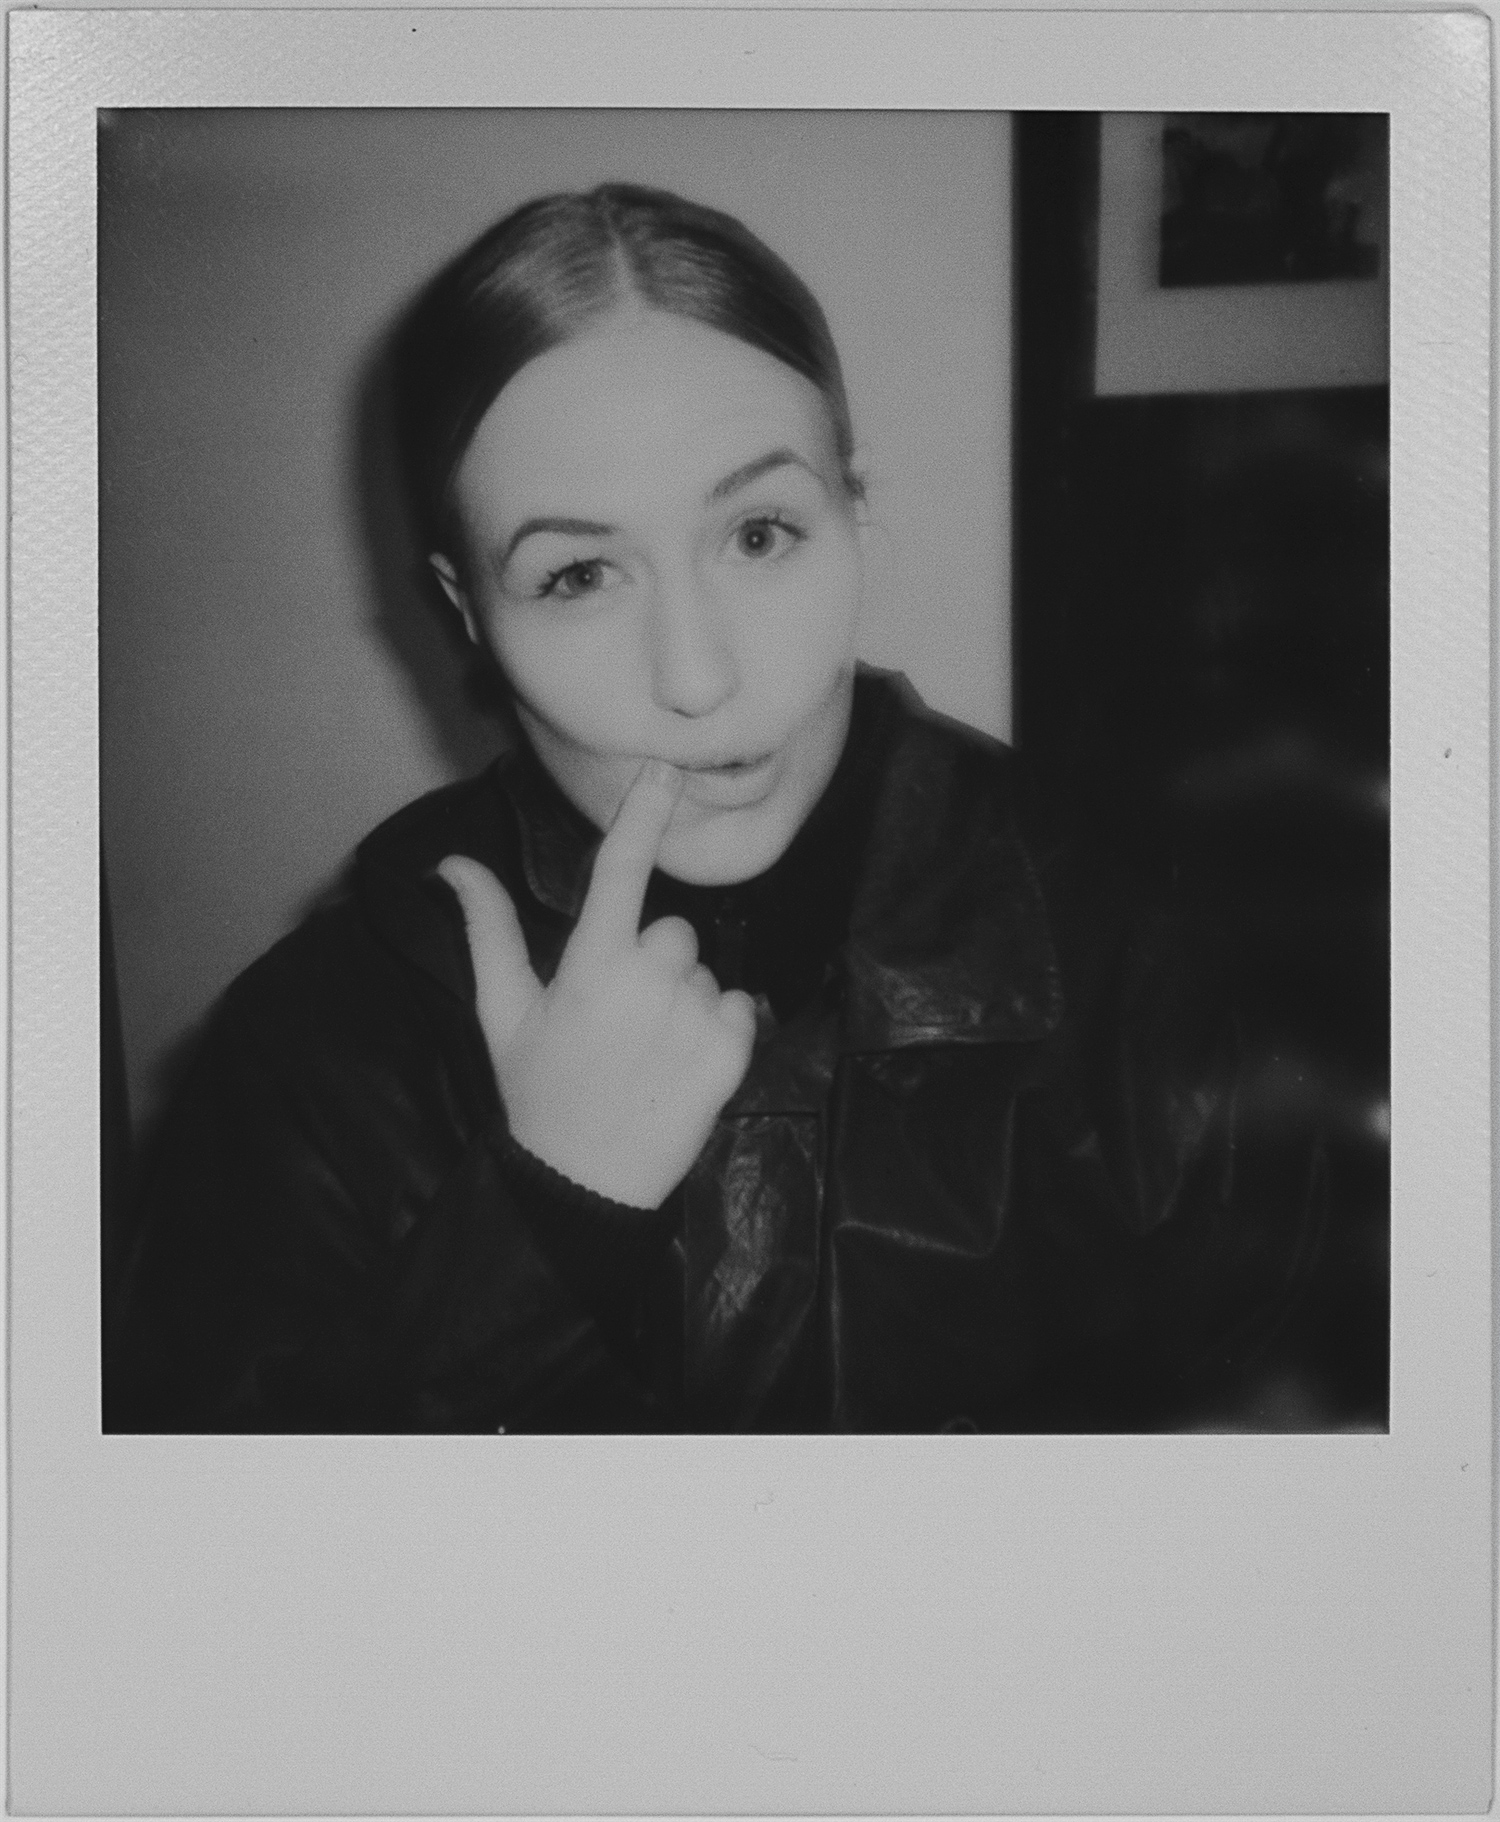 PYLOT ISSUE 04 LAUNCH PARTY IMPOSSIBLE PROJECT 01